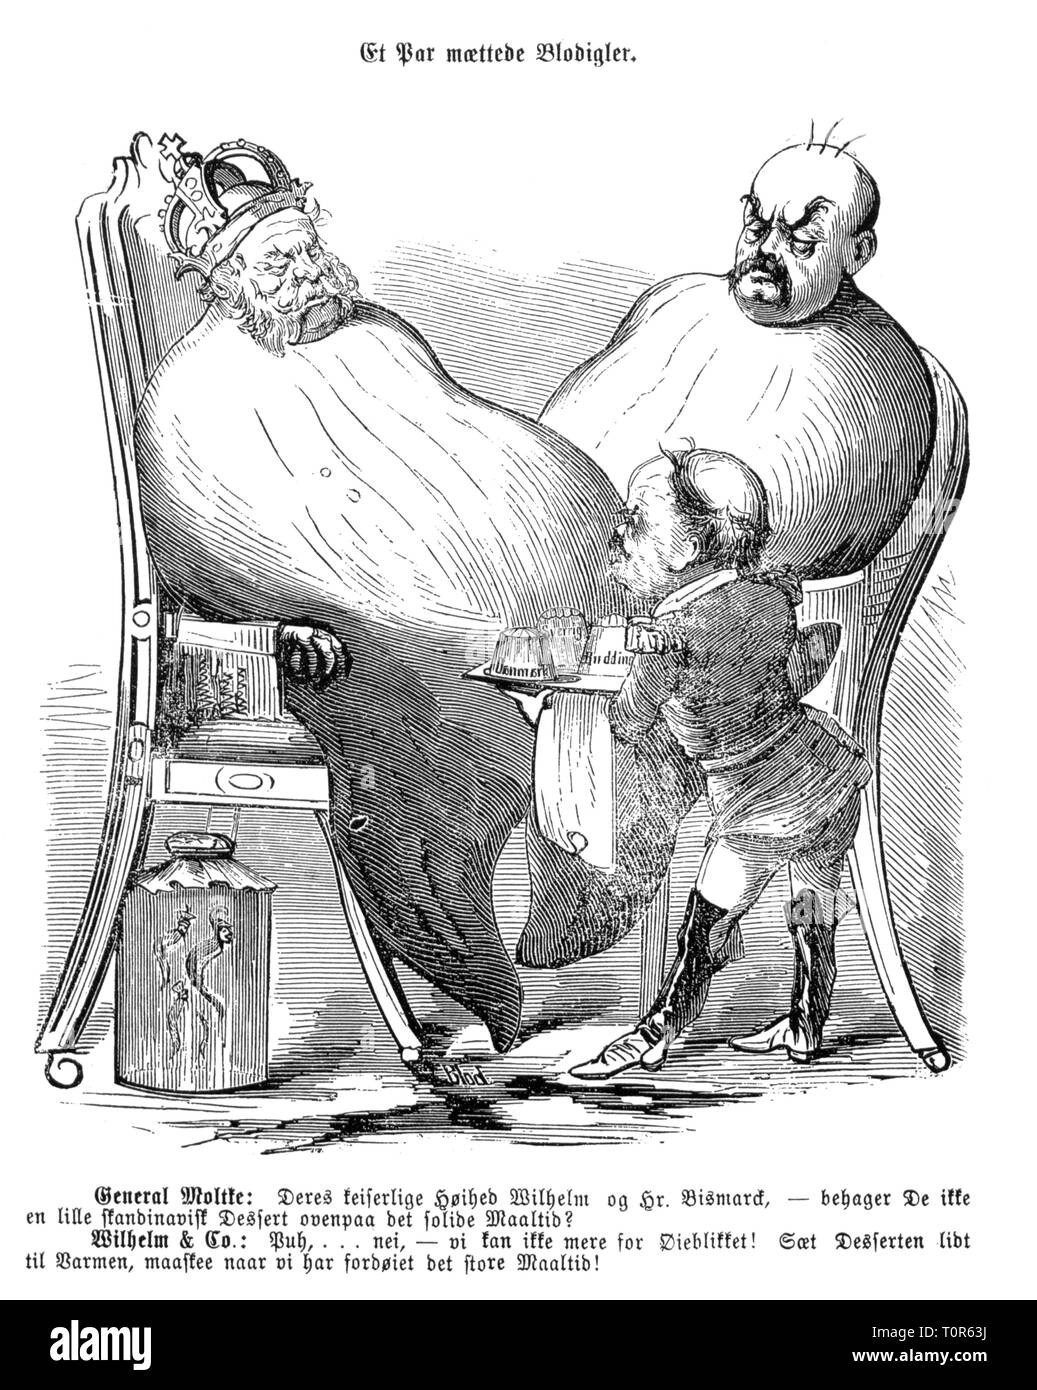 Franco-Prussian War 1870 - 1871, caricature, Helmuth von Moltke offering William I and Otto von Bismarck Denmark and Sweden for dessert, 'A couple of well-fed leeches', drawing, 'Folkets Nisse', Copenhagen, 25.3.1871, satire, caricature, caricatures, cartoon, cartoons, Danish press, German - French, Imperial Chancellor, German Empire, Germany, emperor, emperors, king of Prussia, general, generals, victor, victors, full, well-fed, offering, people, 19th century, historic, historical, Additional-Rights-Clearance-Info-Not-Available - Stock Image